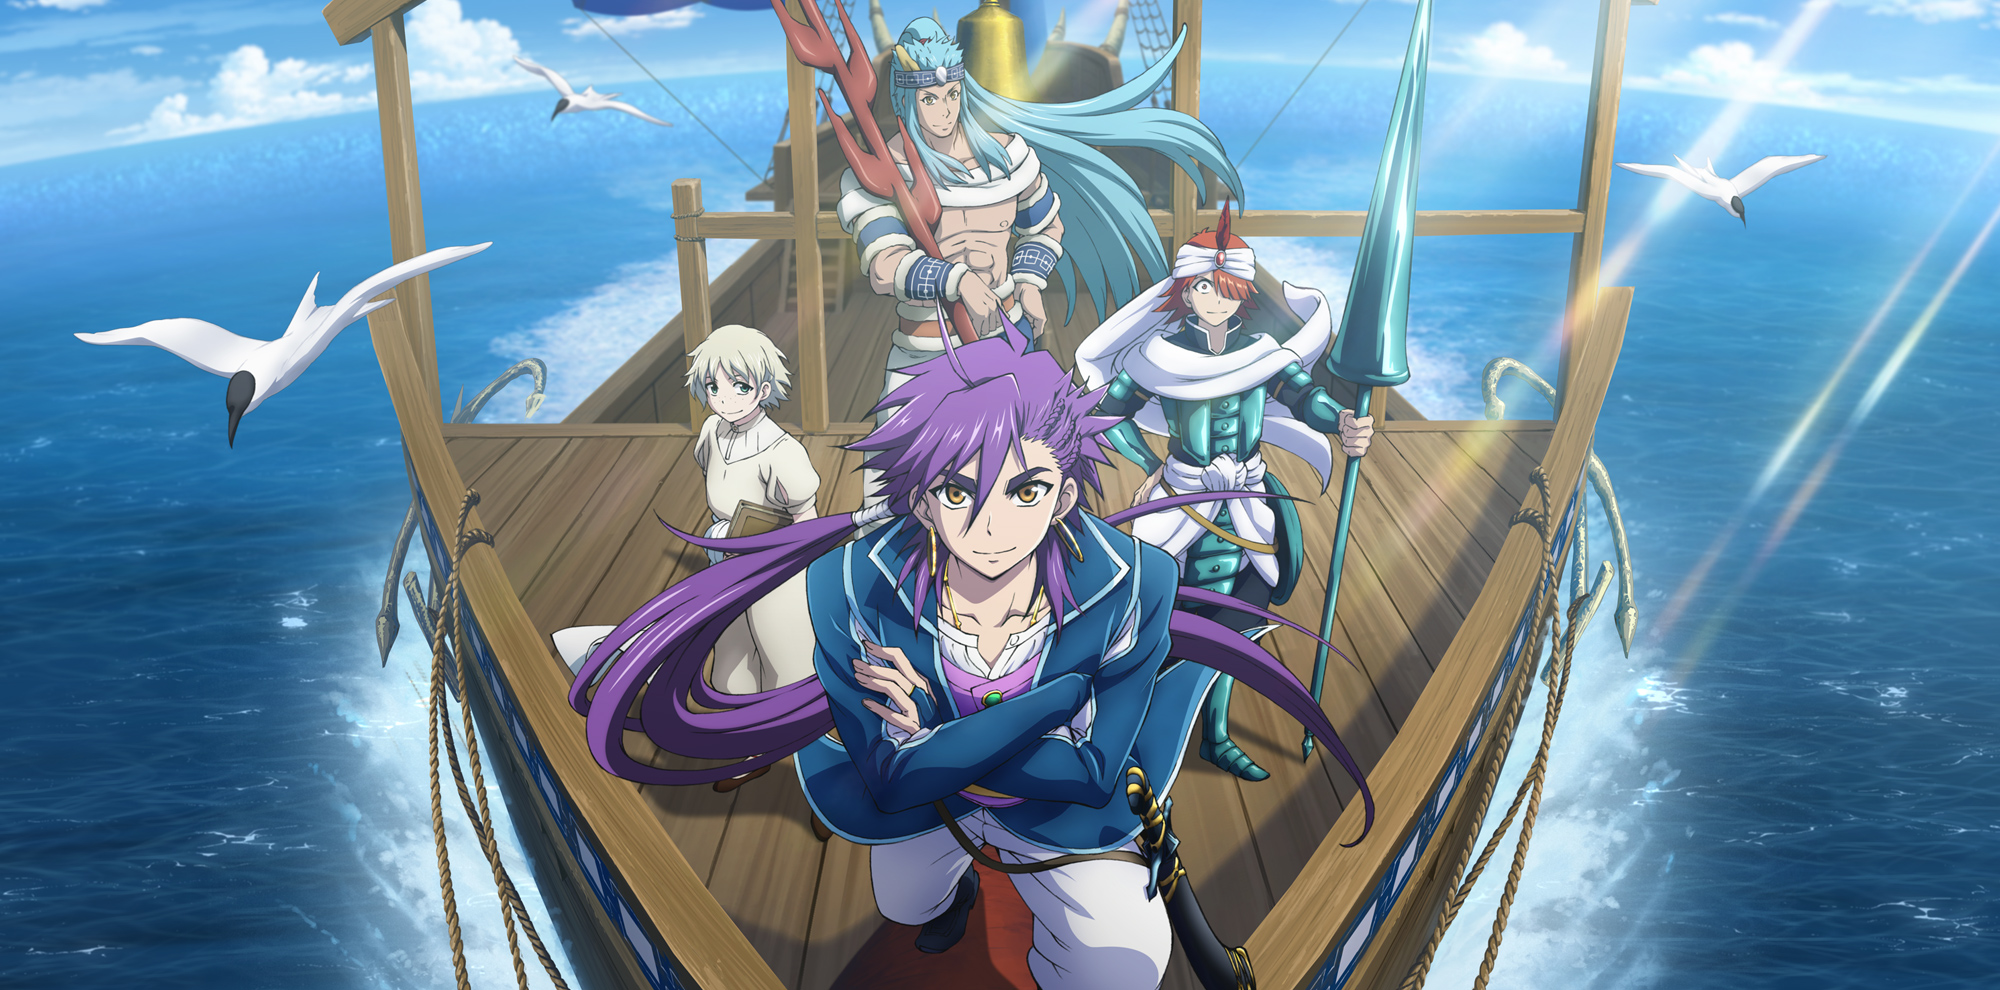 Magi the adventure of sinbad (TV anime) Anticipation - AnimeSuki Forum